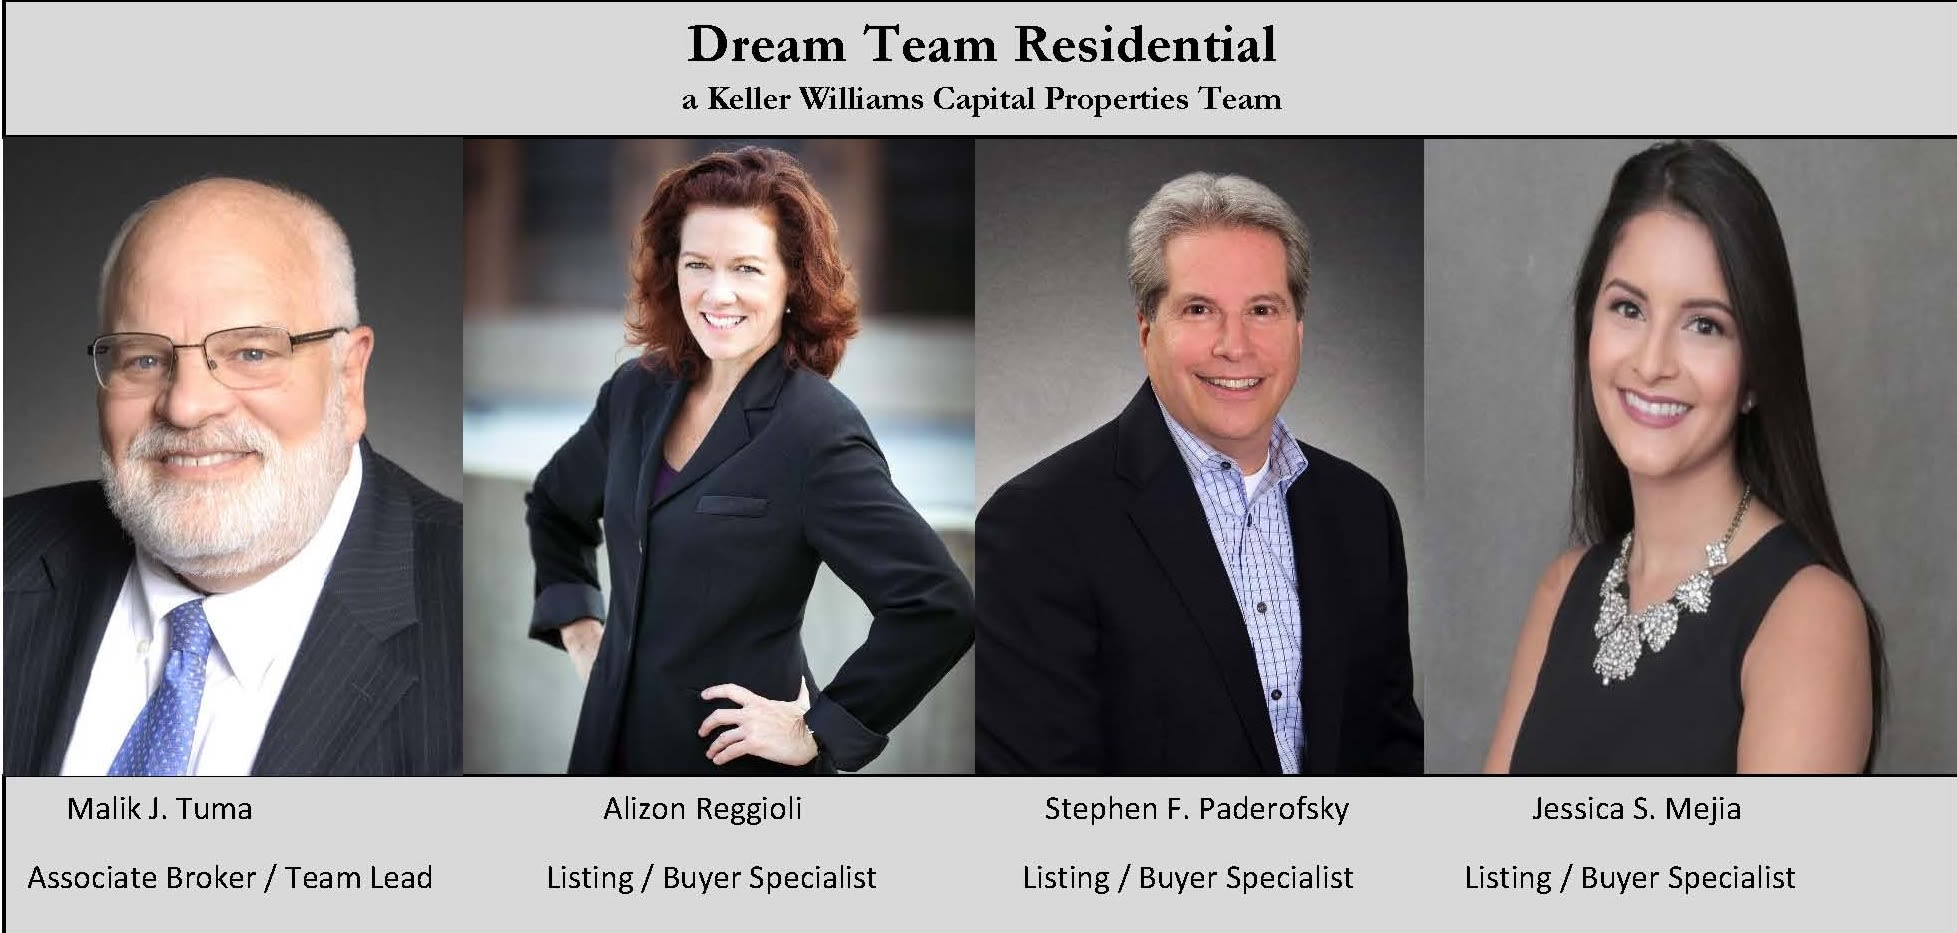 Dream Team Residential, A Keller Williams Capital Properties Team